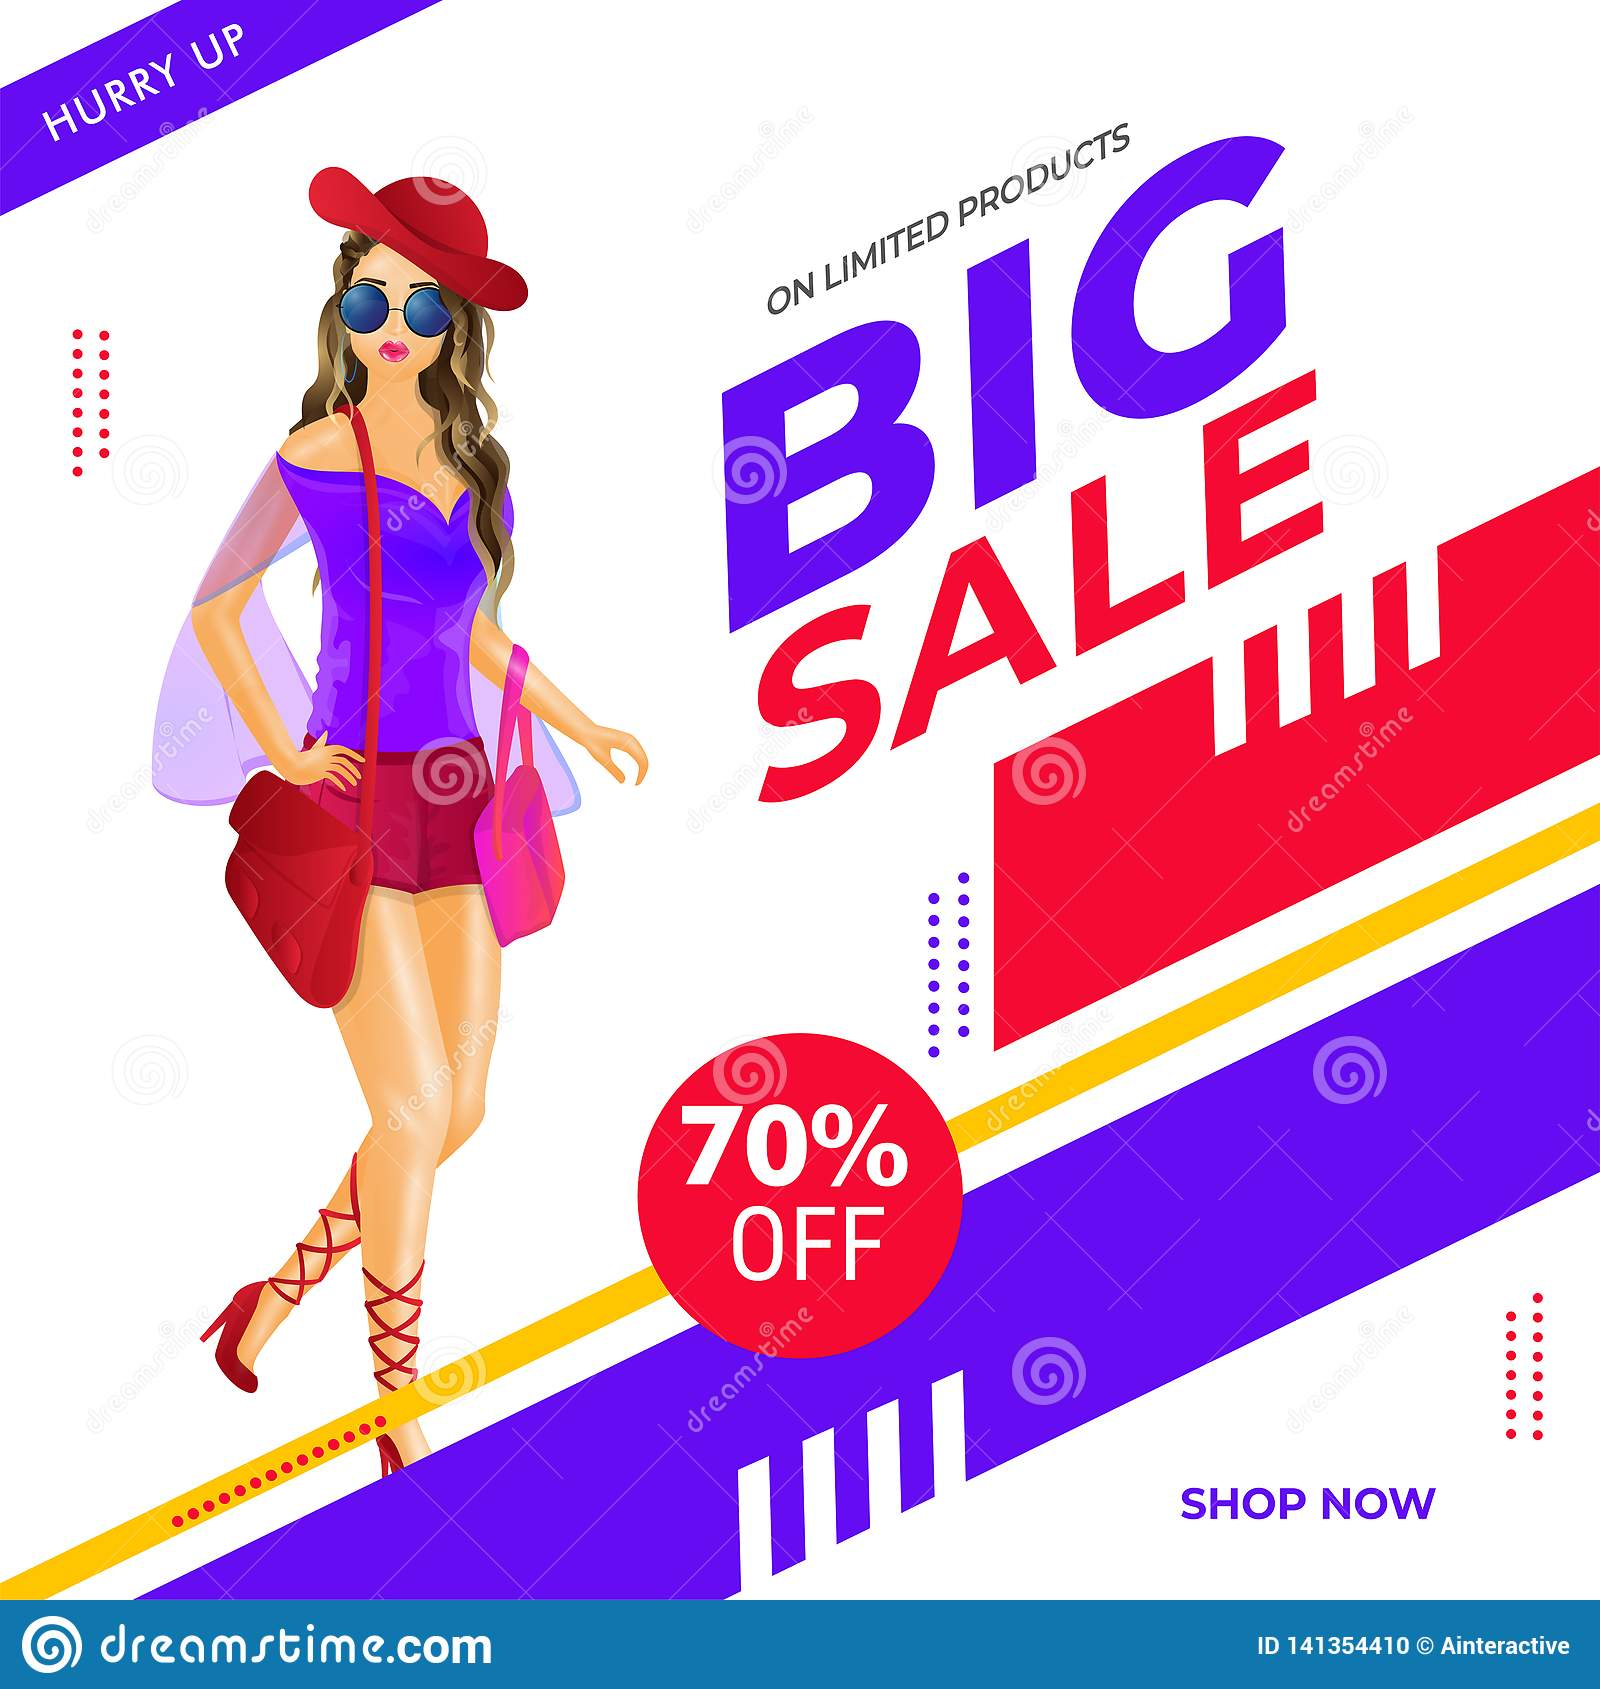 27 Cheap Design Ideas Offering: Big Sale Poster Or Banner Design With 70% Discount Offer